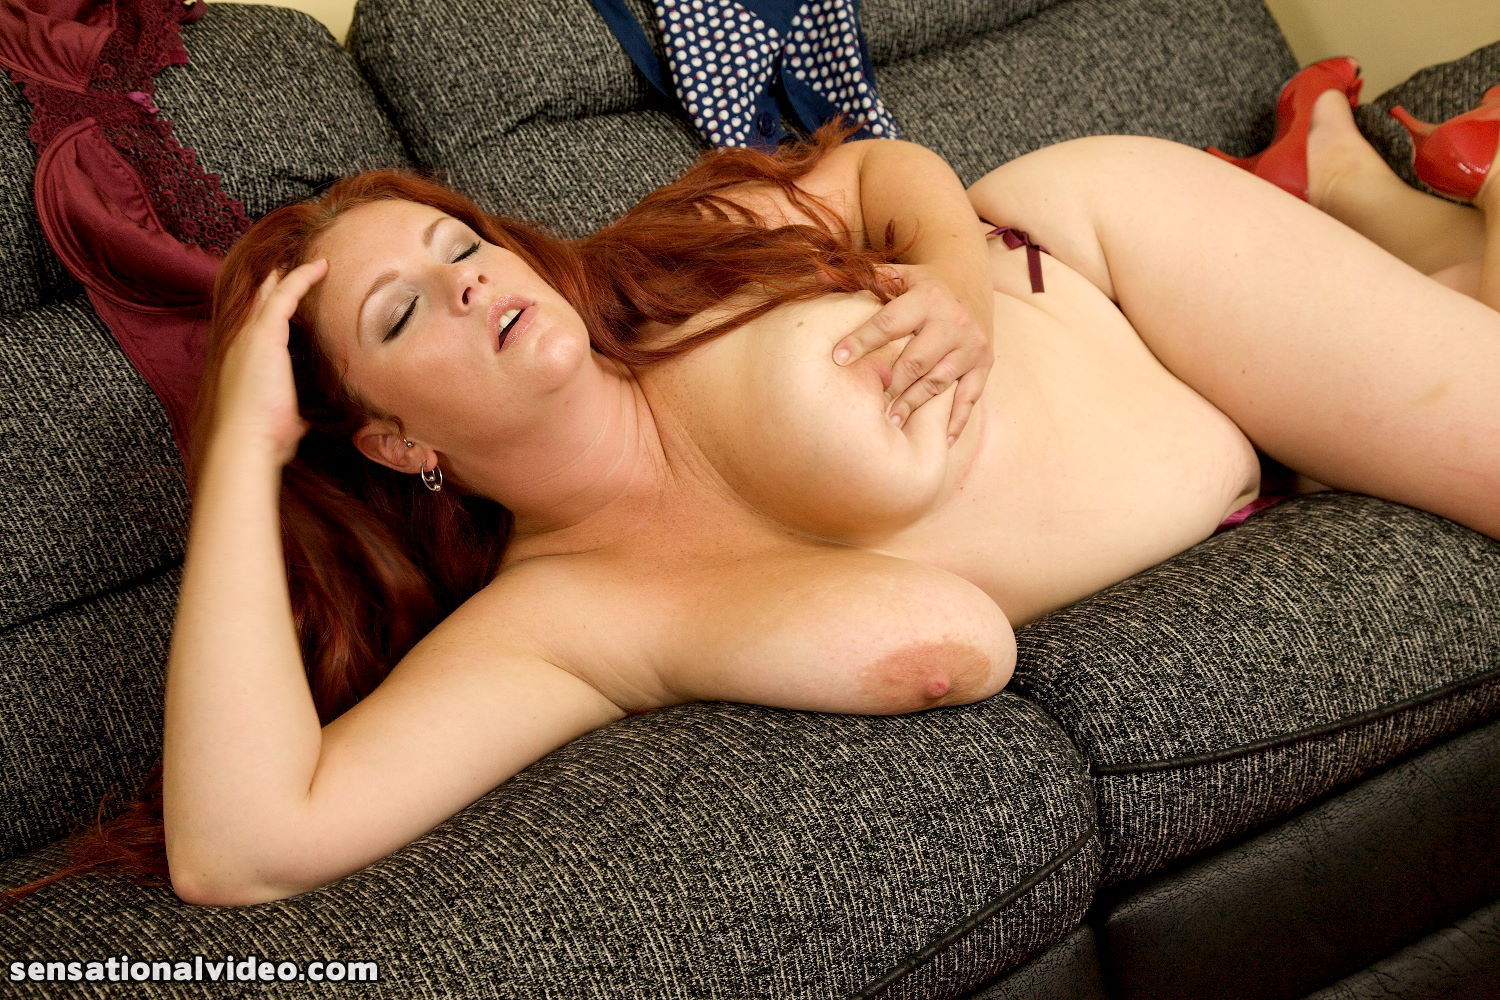 Mellie d redd adaire and kerry marie - 2 part 1